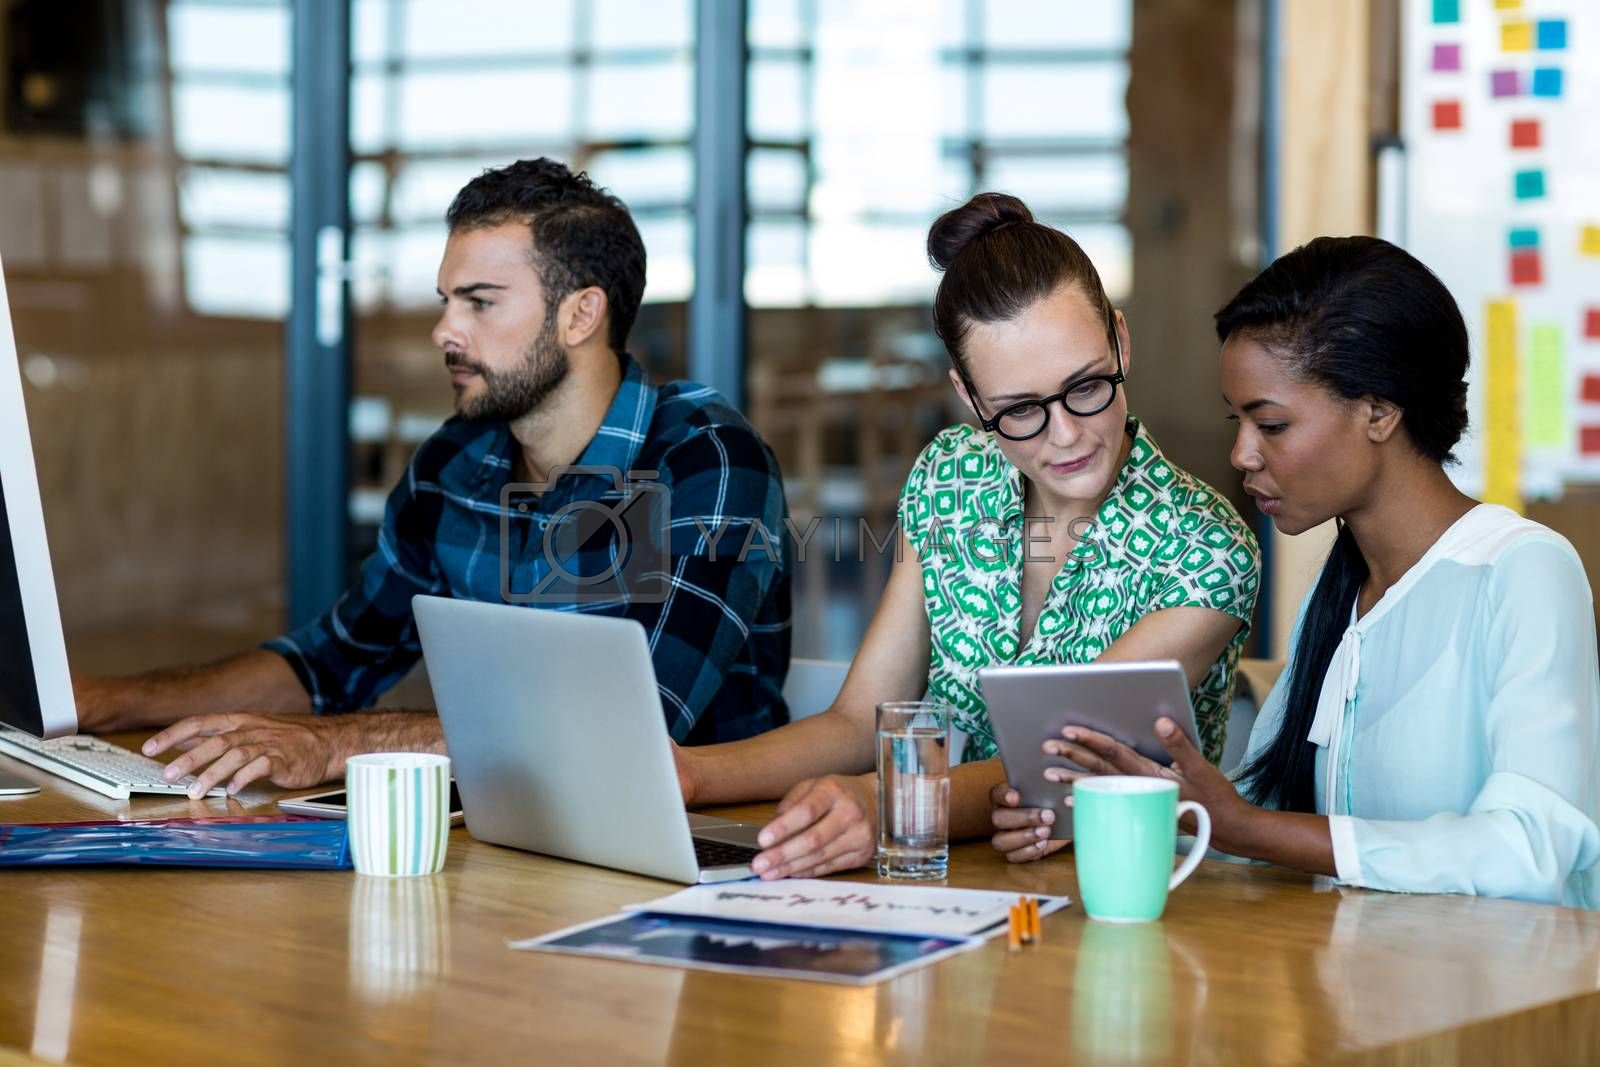 Young man and women sitting at their desk and discuss using laptop, digital tablet and personal computer in the office